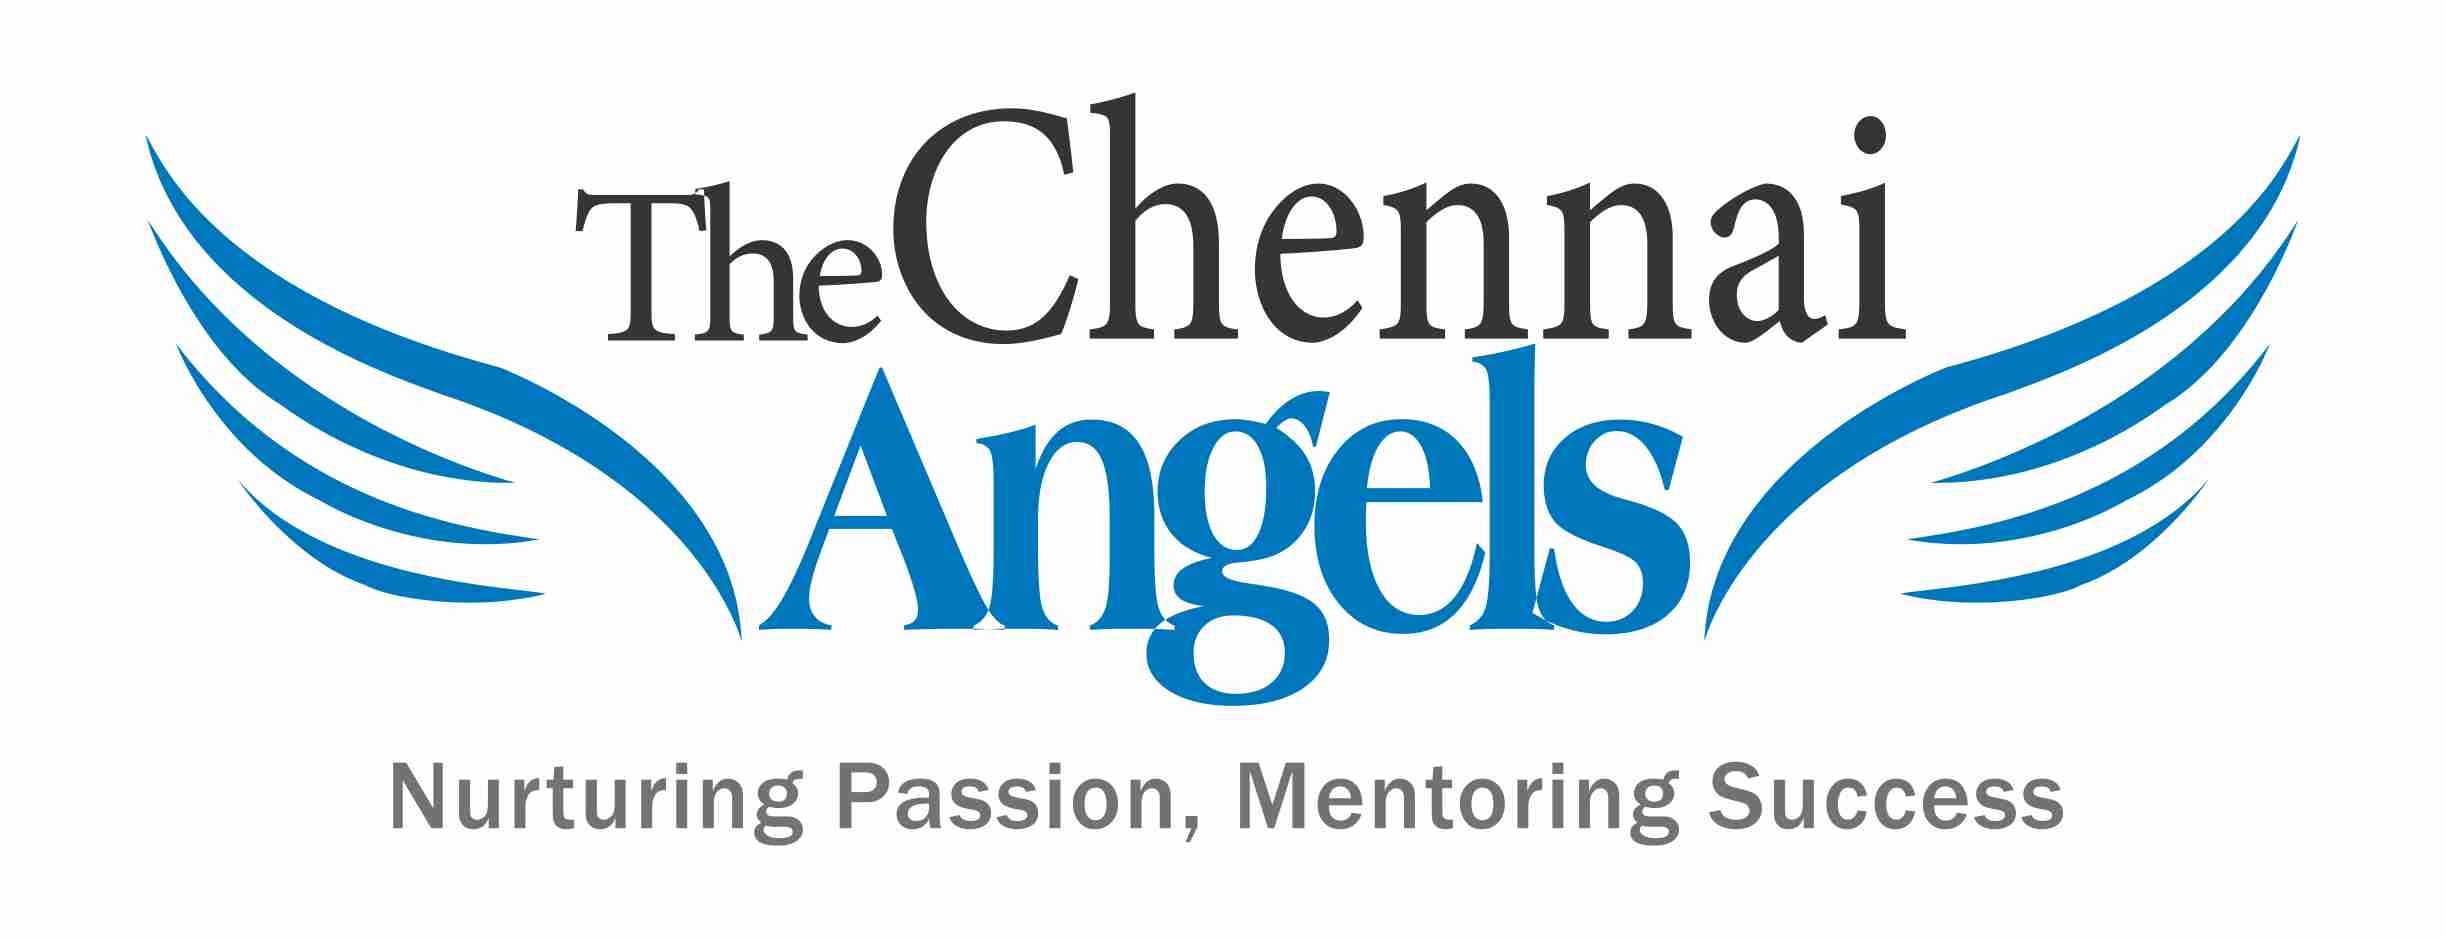 The Chennai Angels